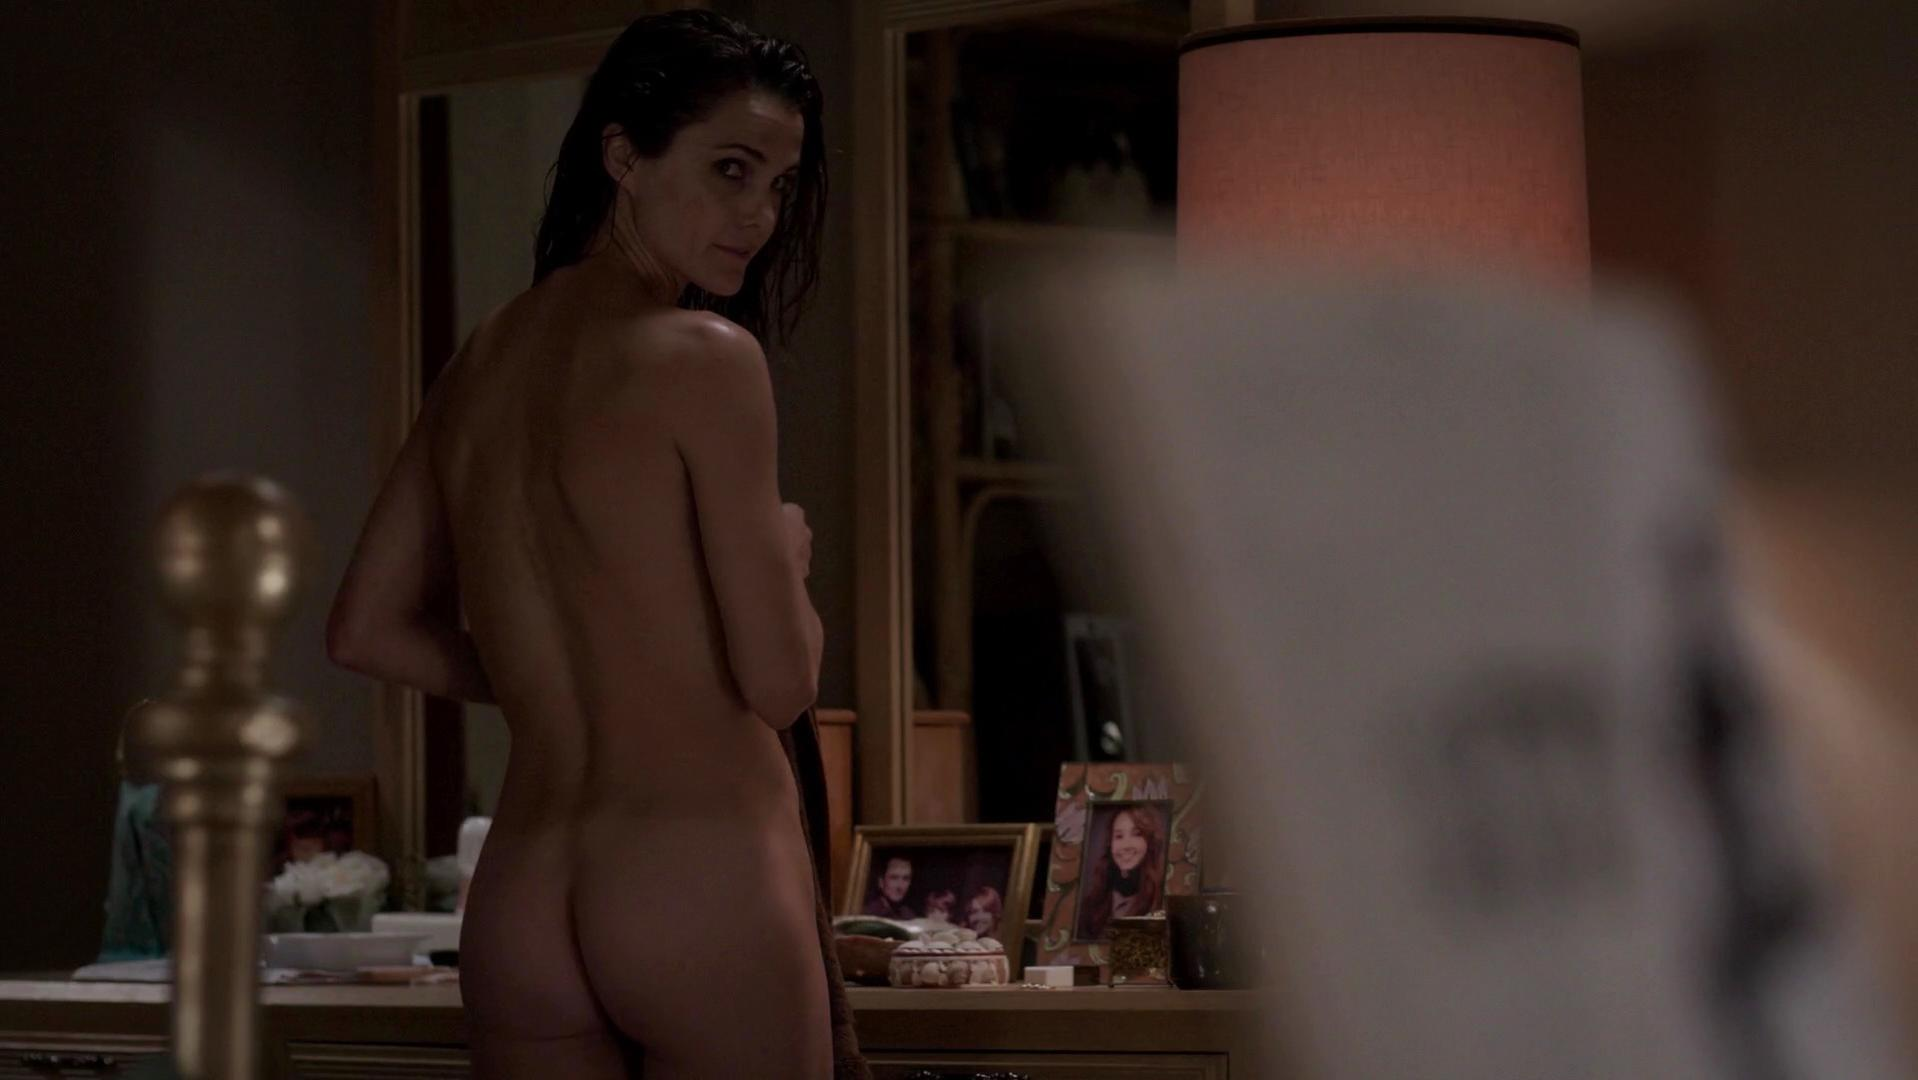 Keri Russell nude - The Americans s03e03 (2015)